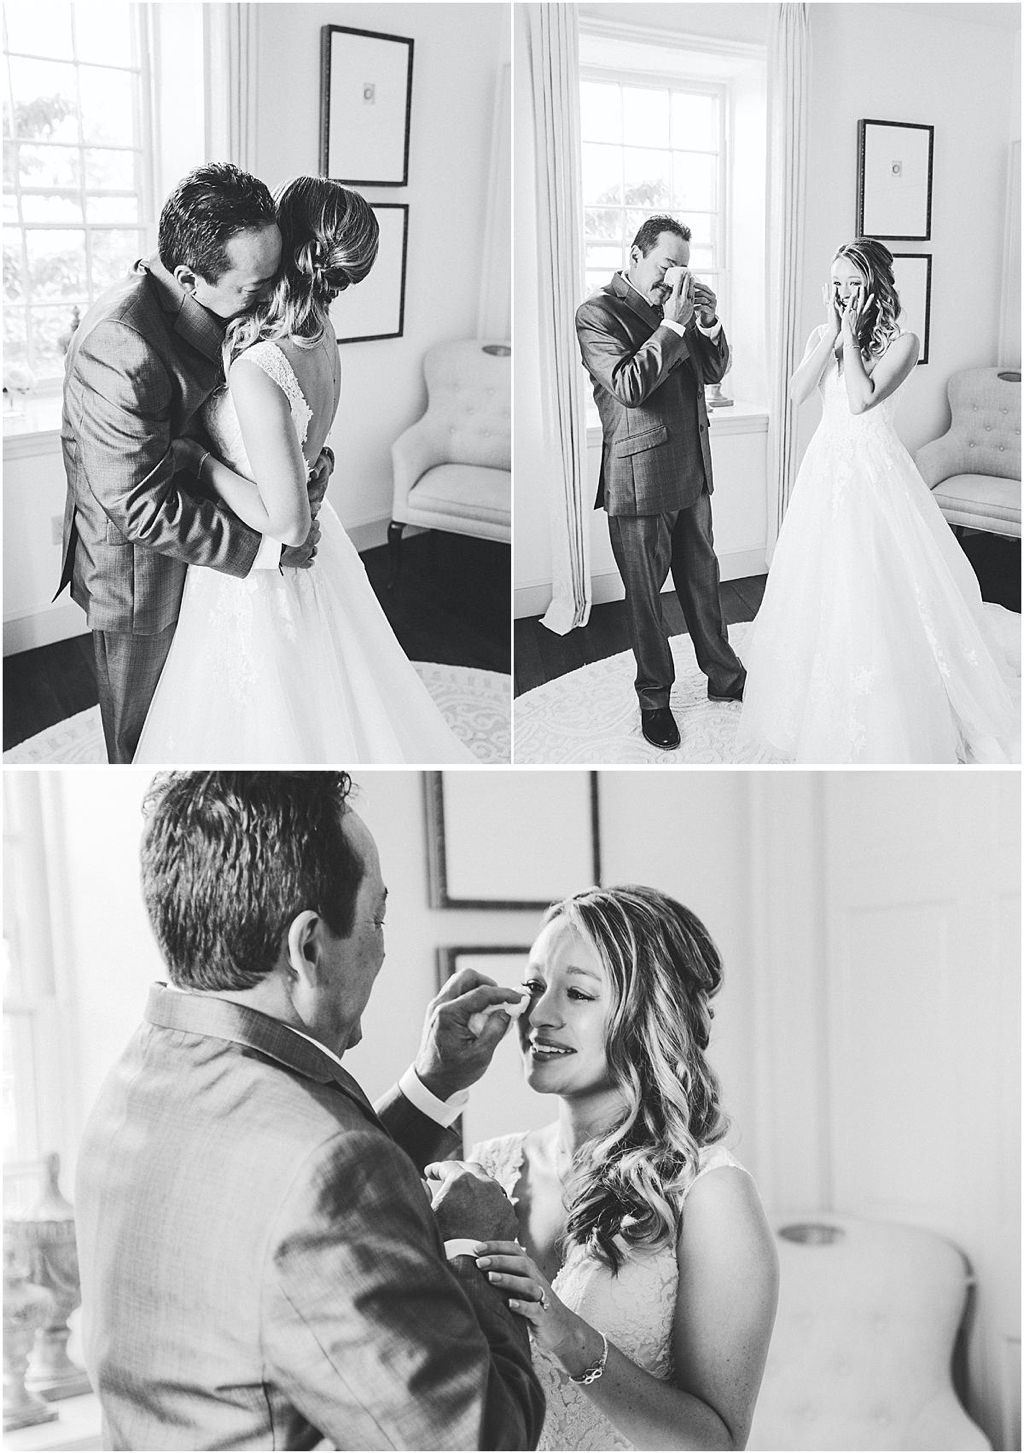 A bride doing a first look with her father